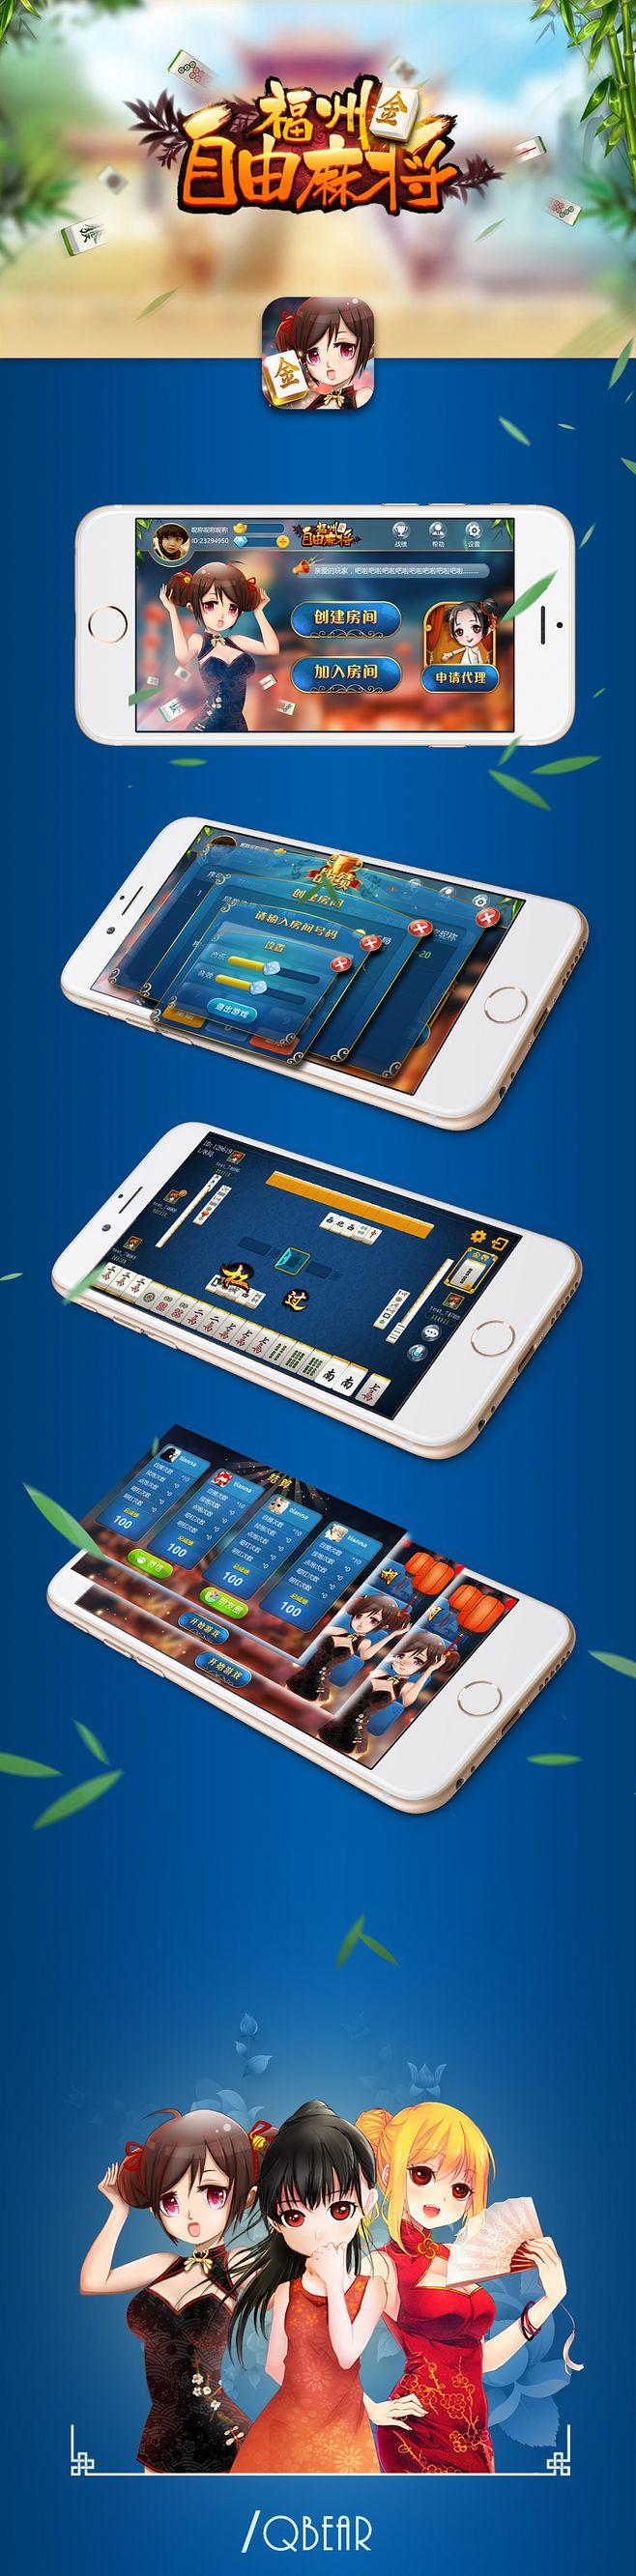 juicy fruits : drawing elements and screens for slot machine